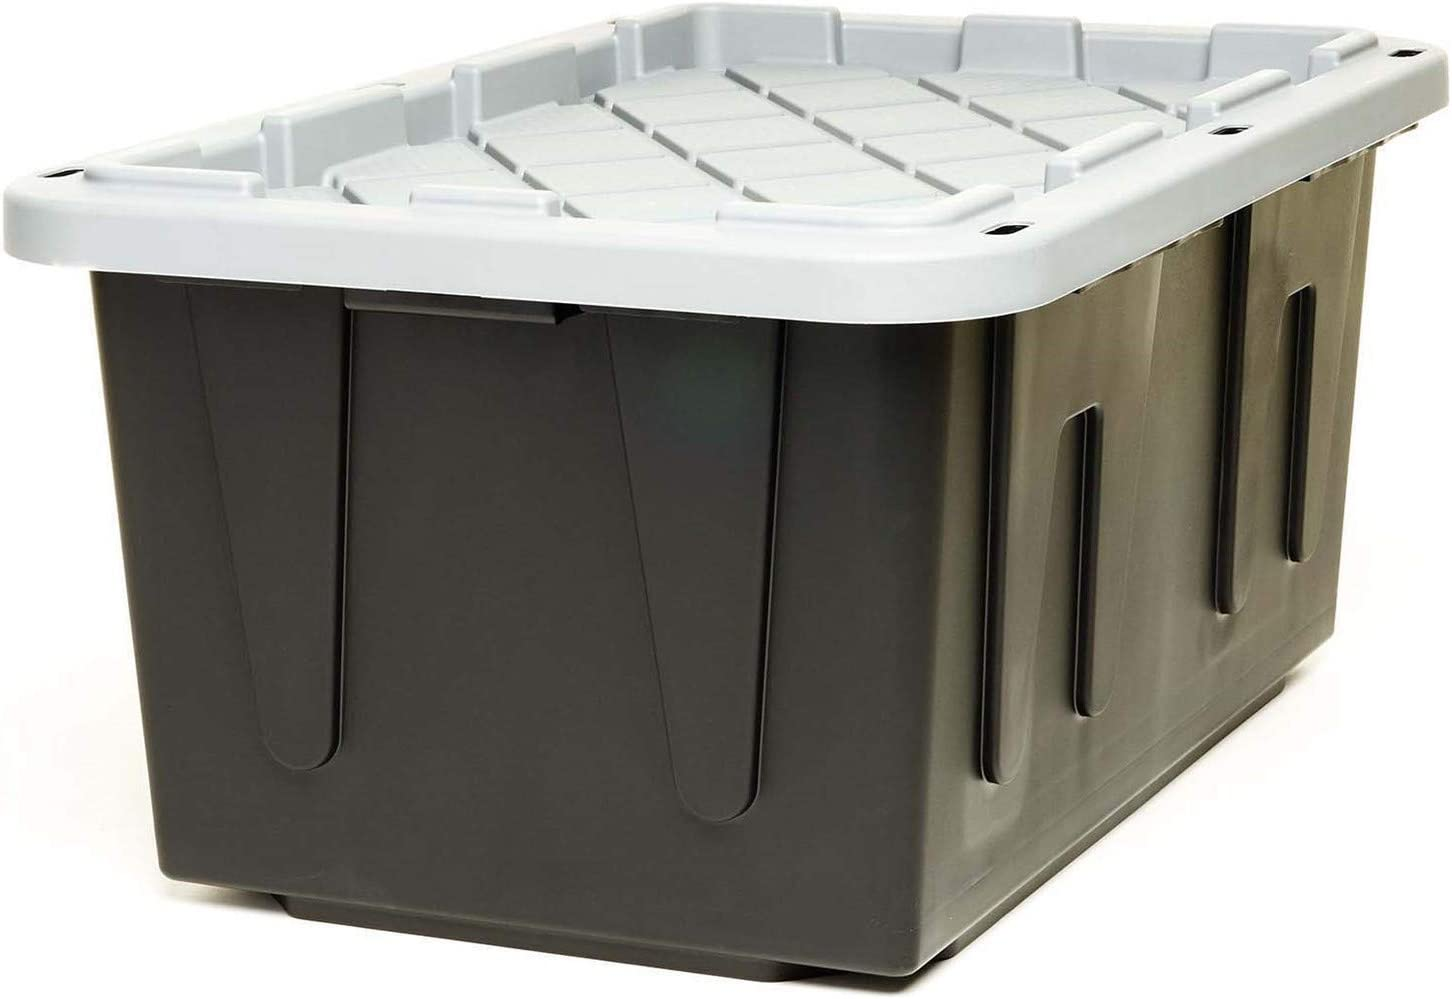 ECOstorage Box Tough Recycled Plastic Storage Container, 27 Gallon, Black, 2 Pack